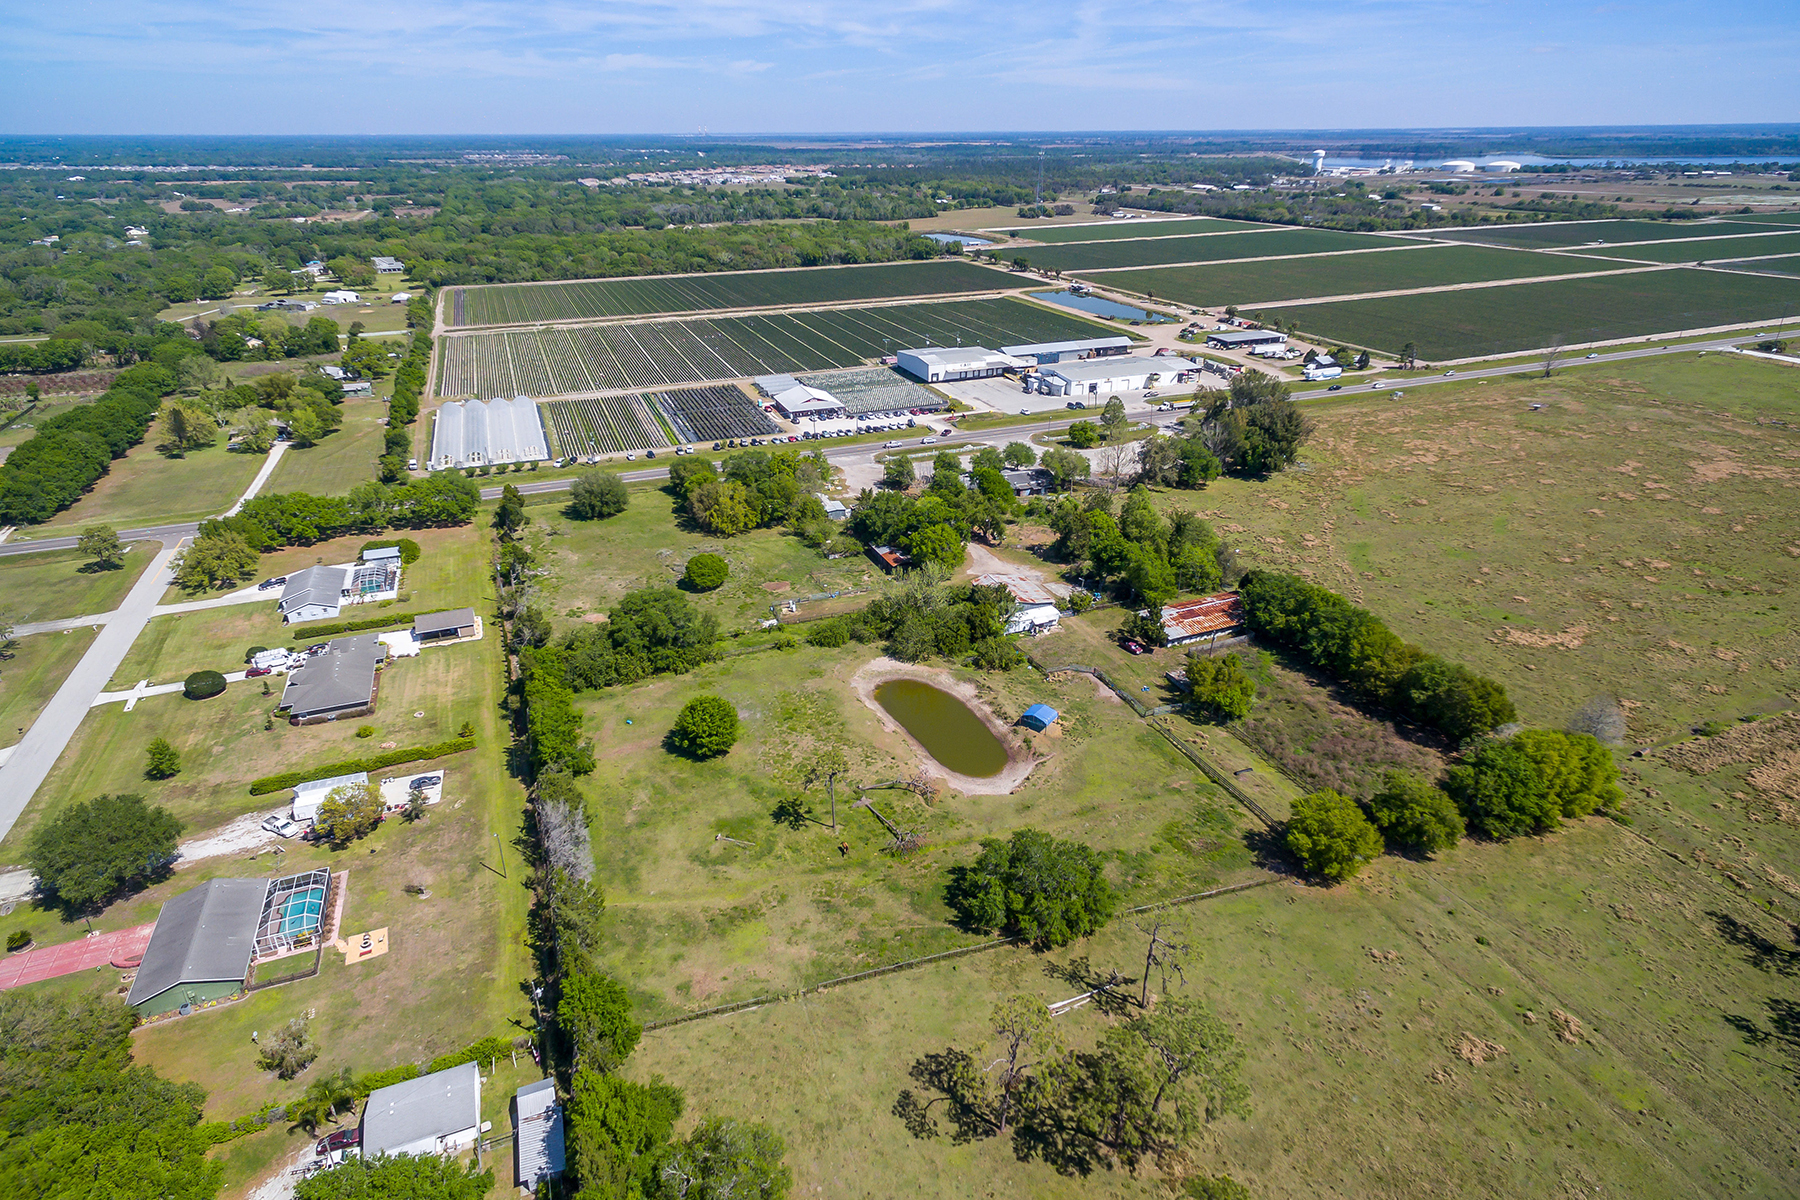 Land for Sale at 16500 STATE RD 64 16500 E State Rd 64 Bradenton, Florida 34212 United States